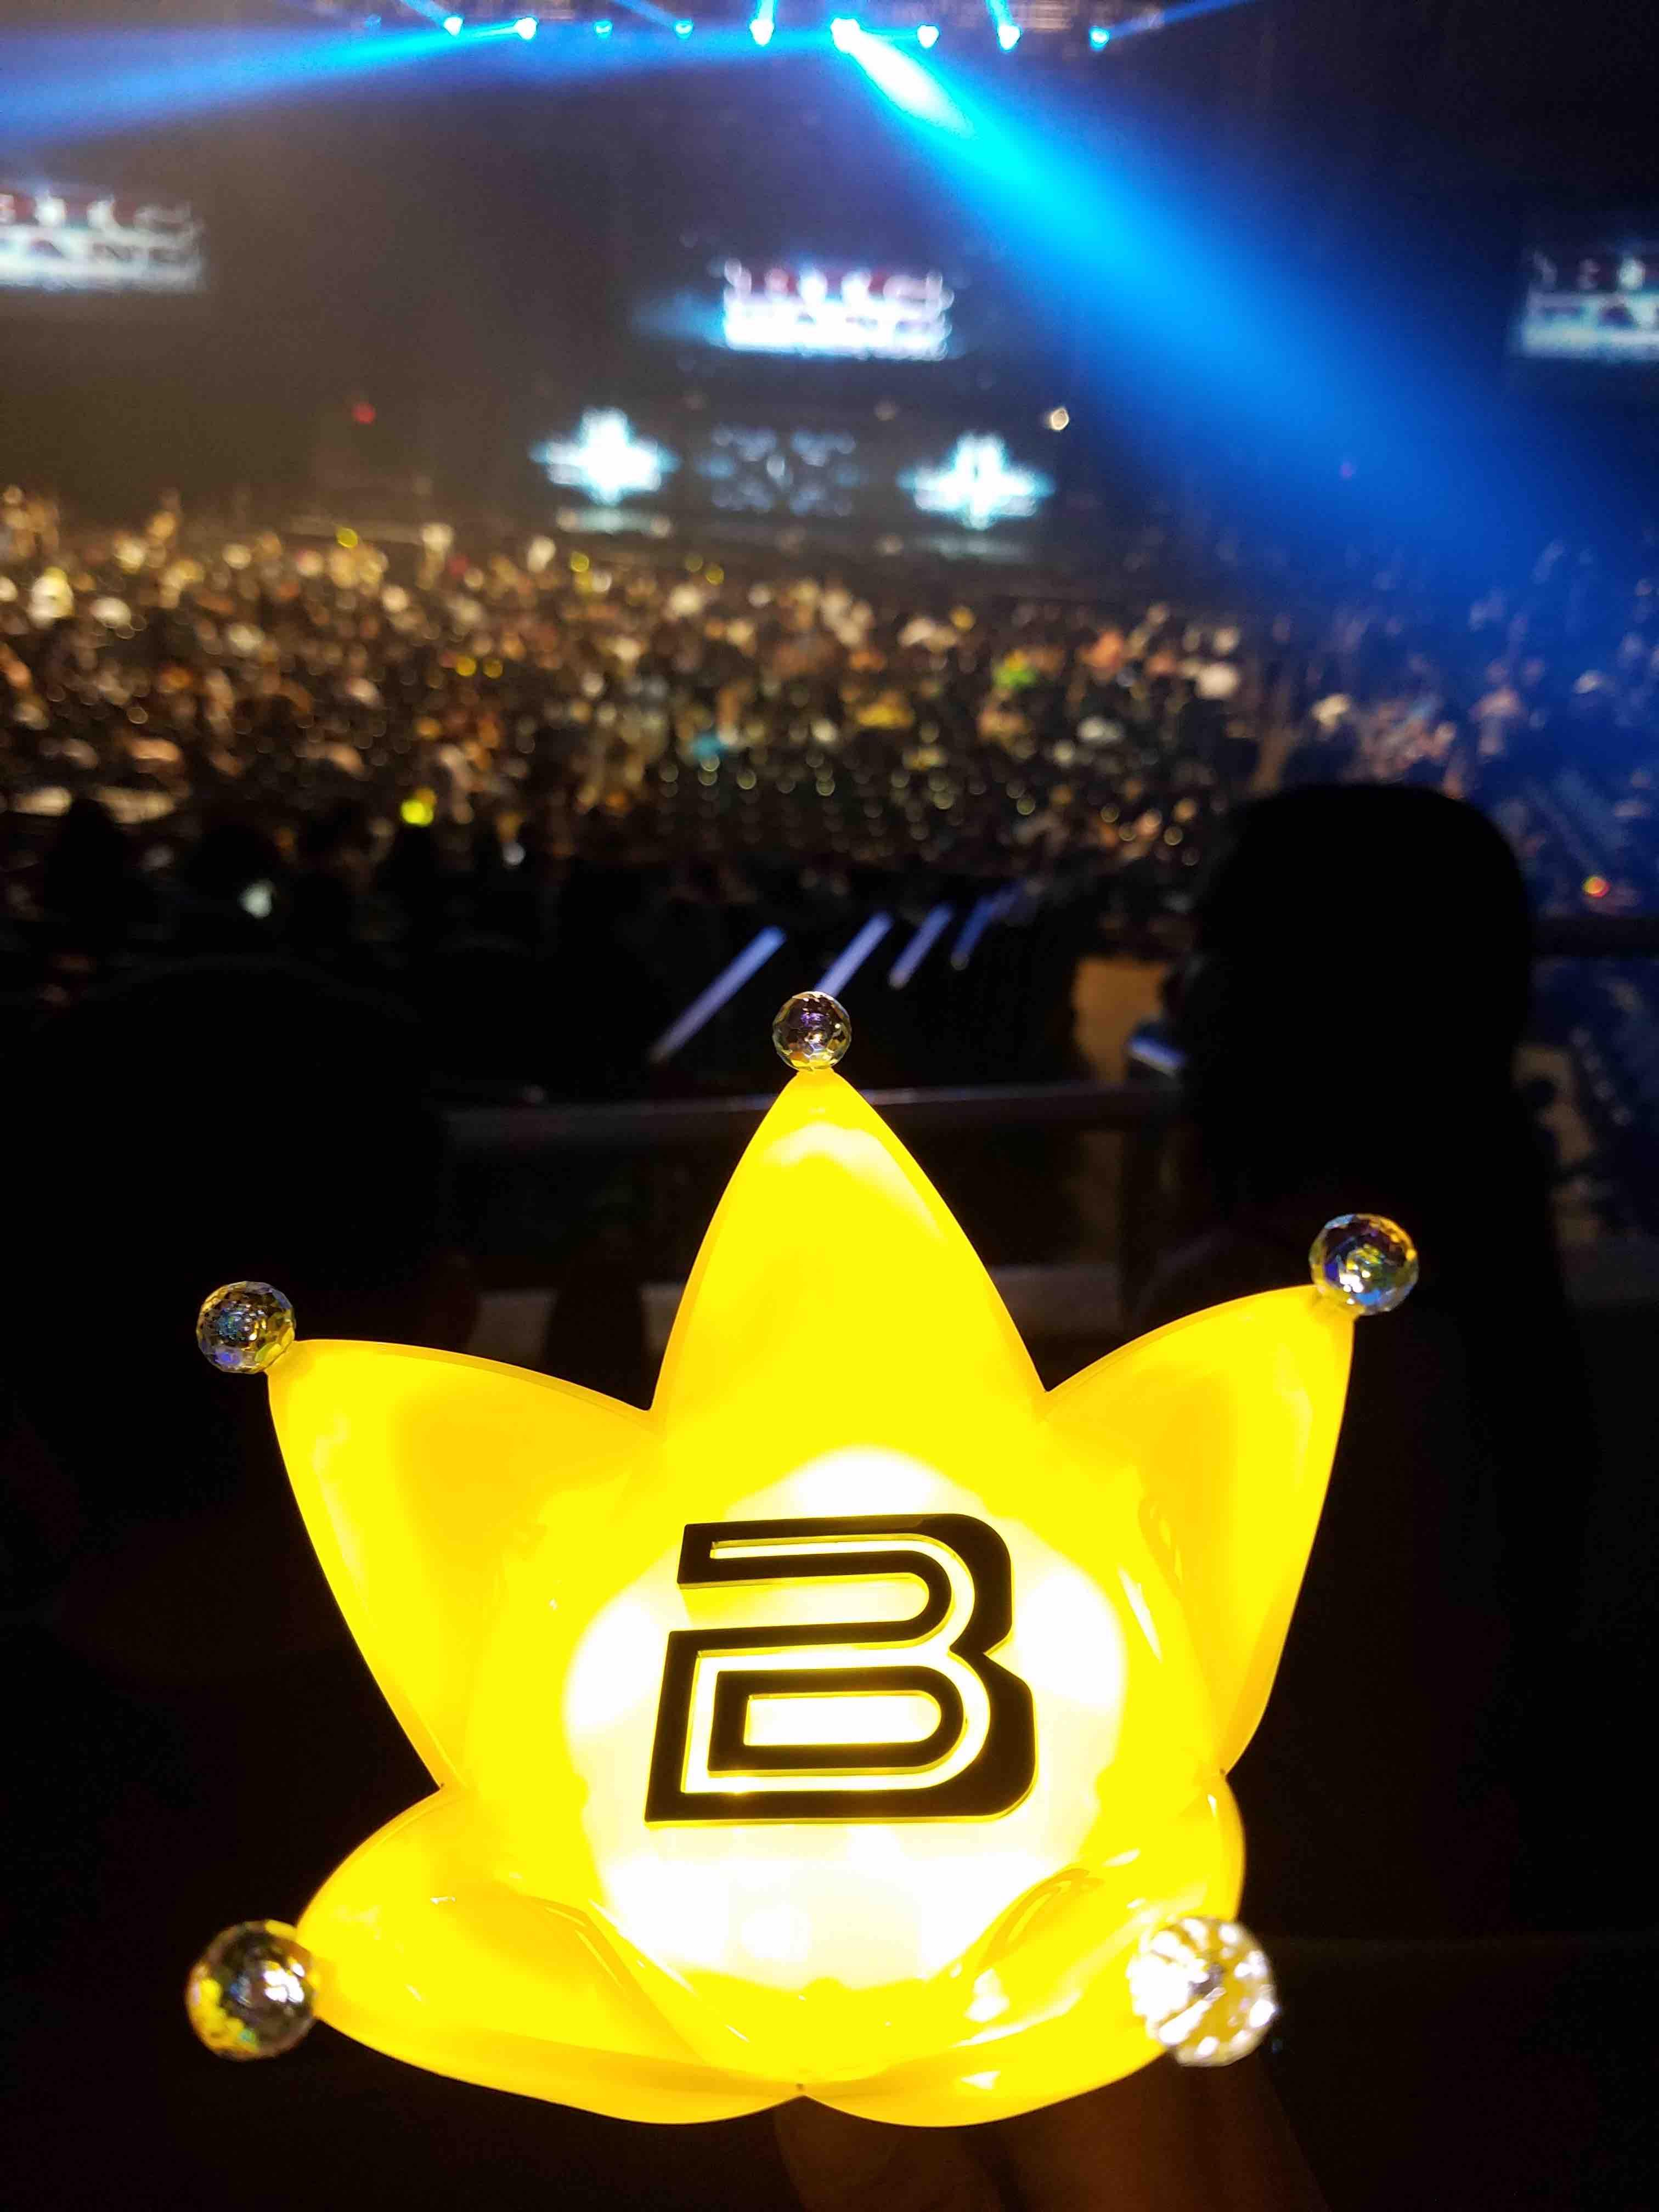 Fans using the Big Bang Official Light Stick during the Honolulu concert over the weekend.